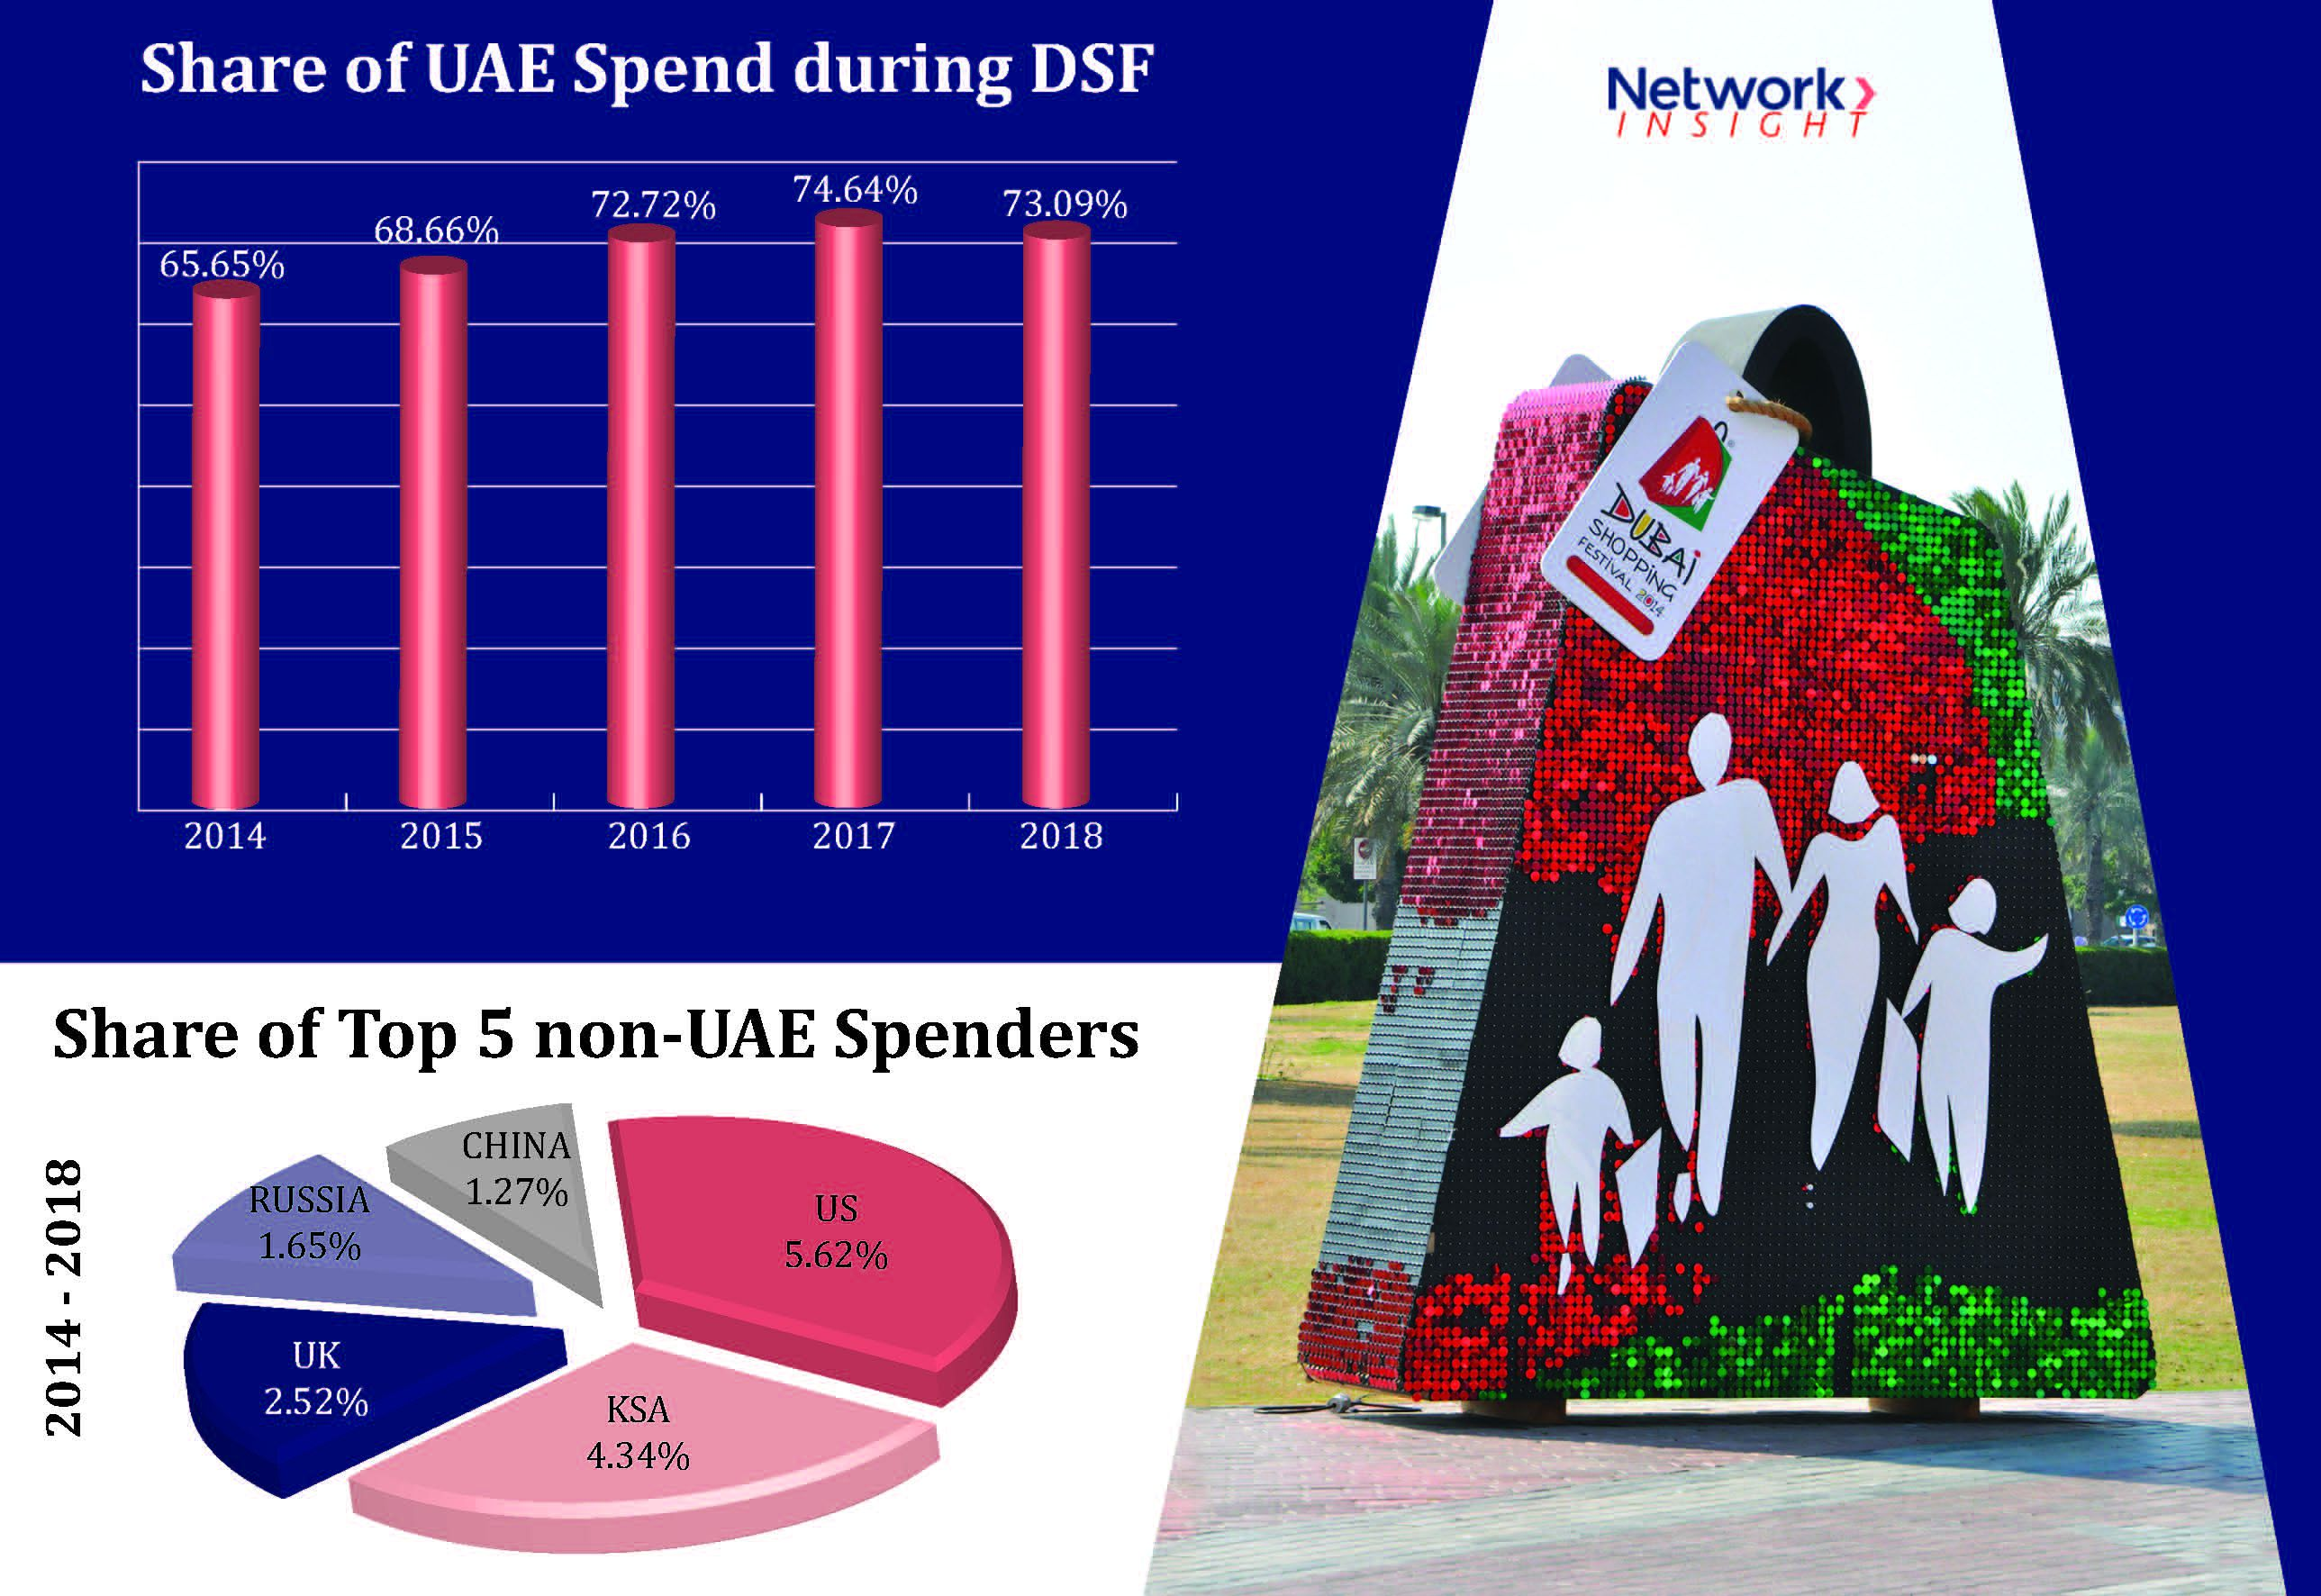 Card spends during Dubai Shopping Festival continue to increase over past five years, says Network International